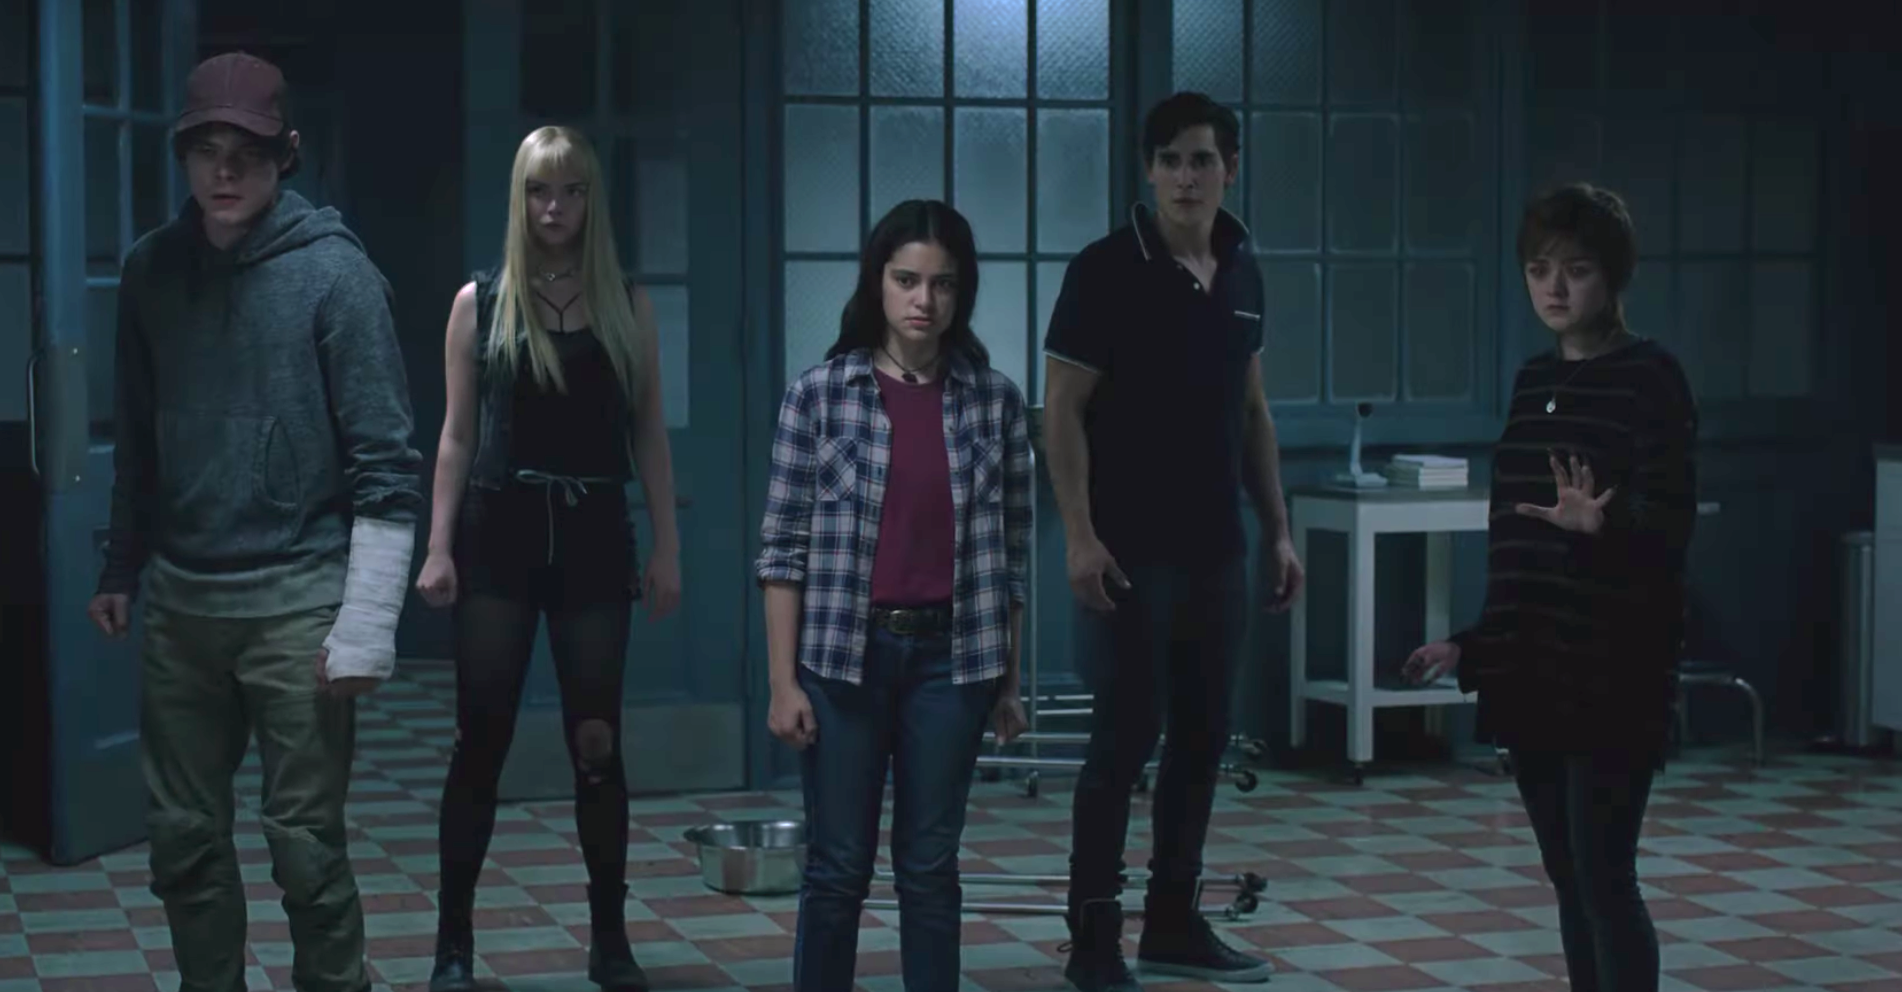 After Two Years, The Official Trailer For The X-Men Horror Movie 'The New Mutants' Has Finally Dropped